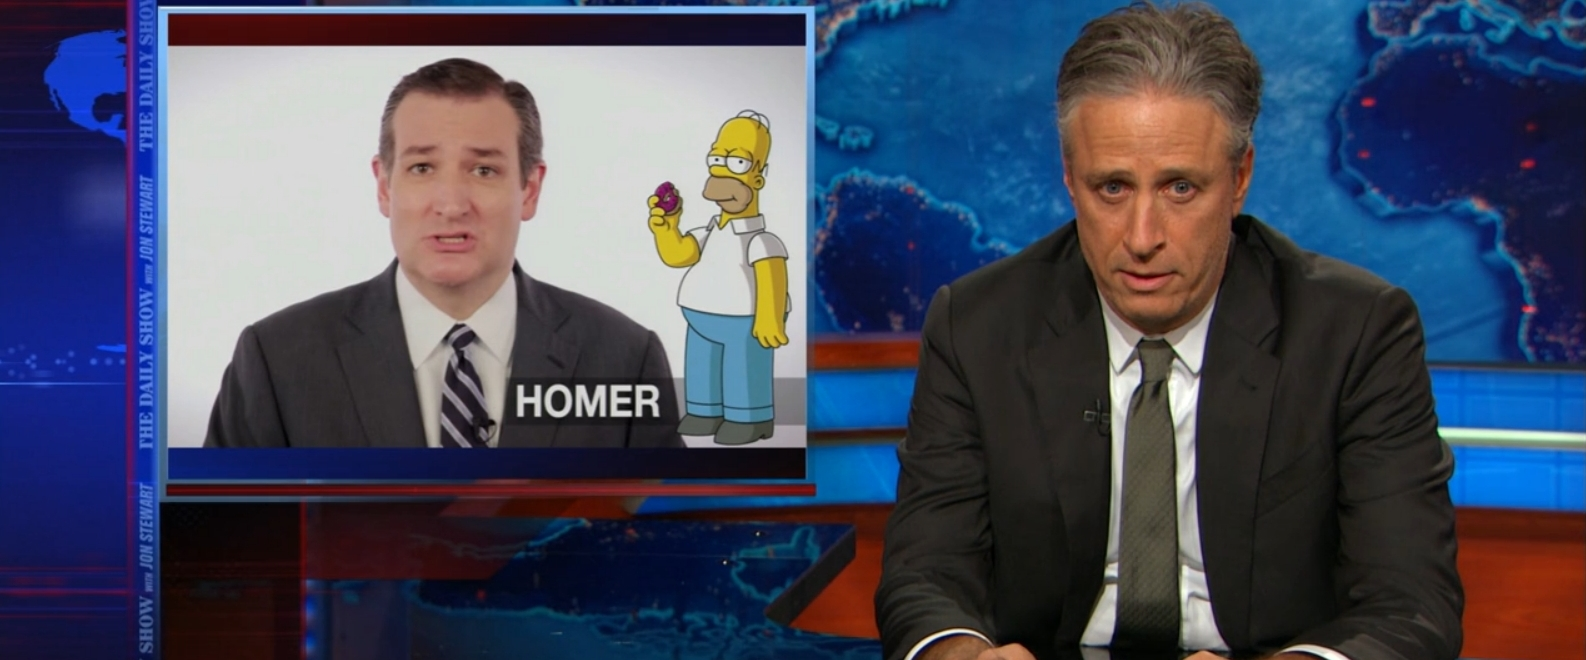 Ted Cruz Tried To Mock 'The Daily Show,' But Ended Up Getting Roasted By Jon Stewart